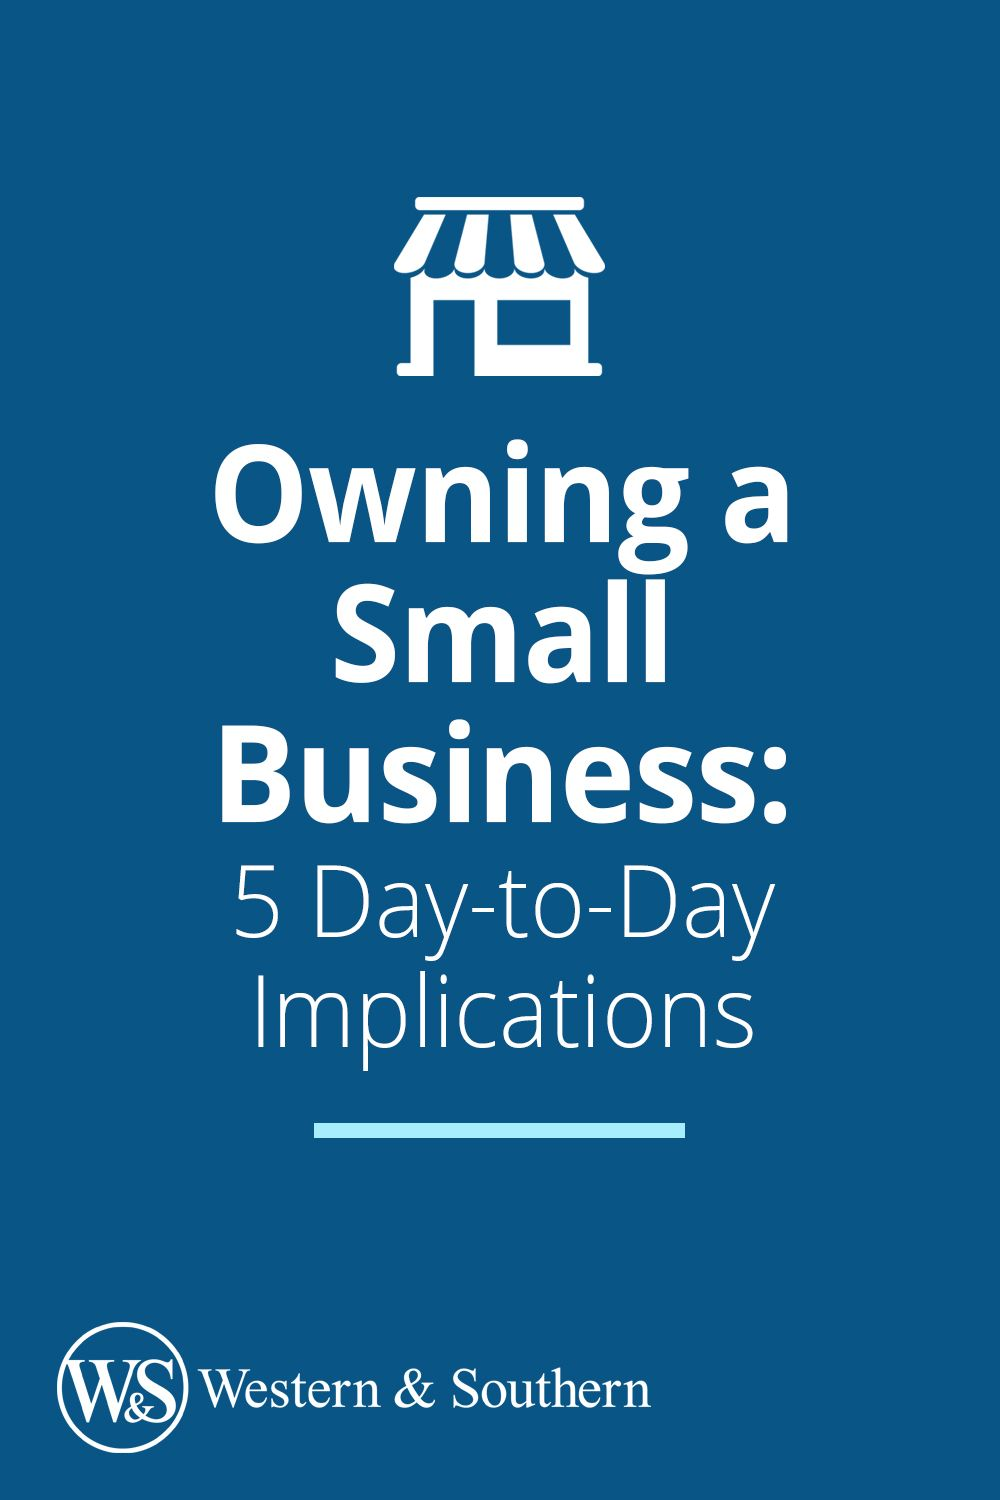 Owning a Small Business 5 DaytoDay Implications to